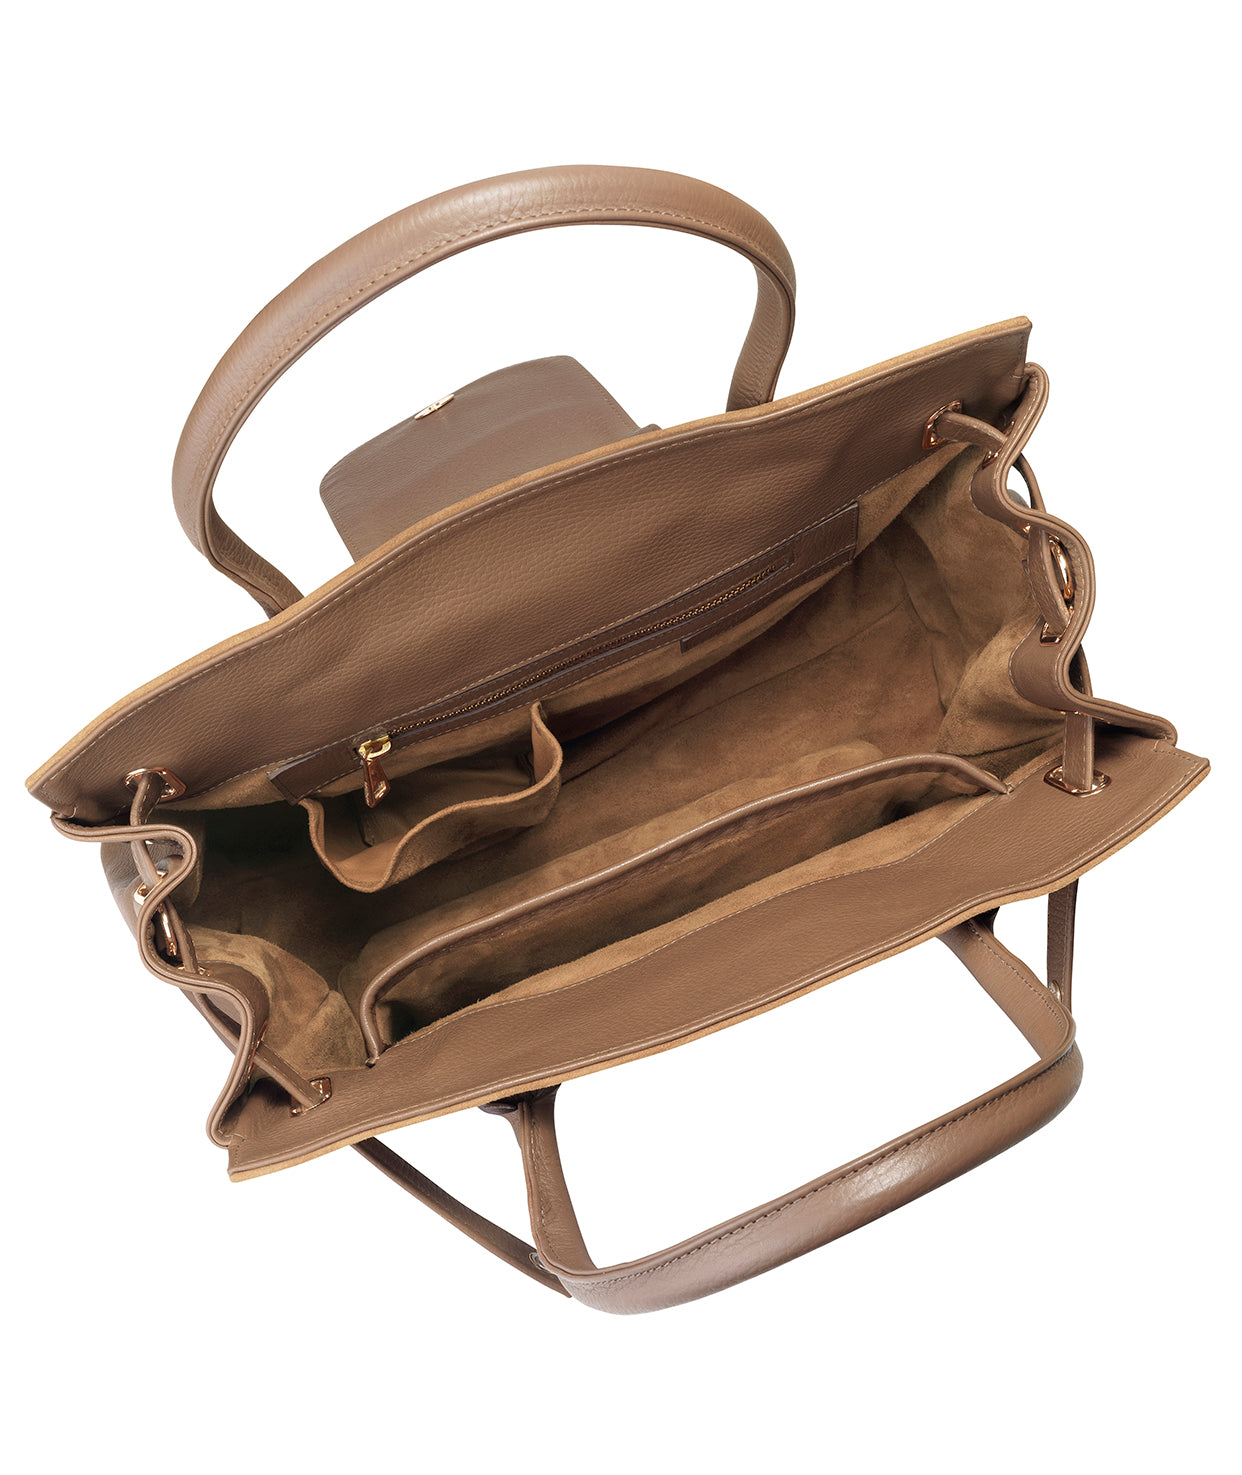 Fairfax and Favor Windsor Handbag for Ladies in Tan